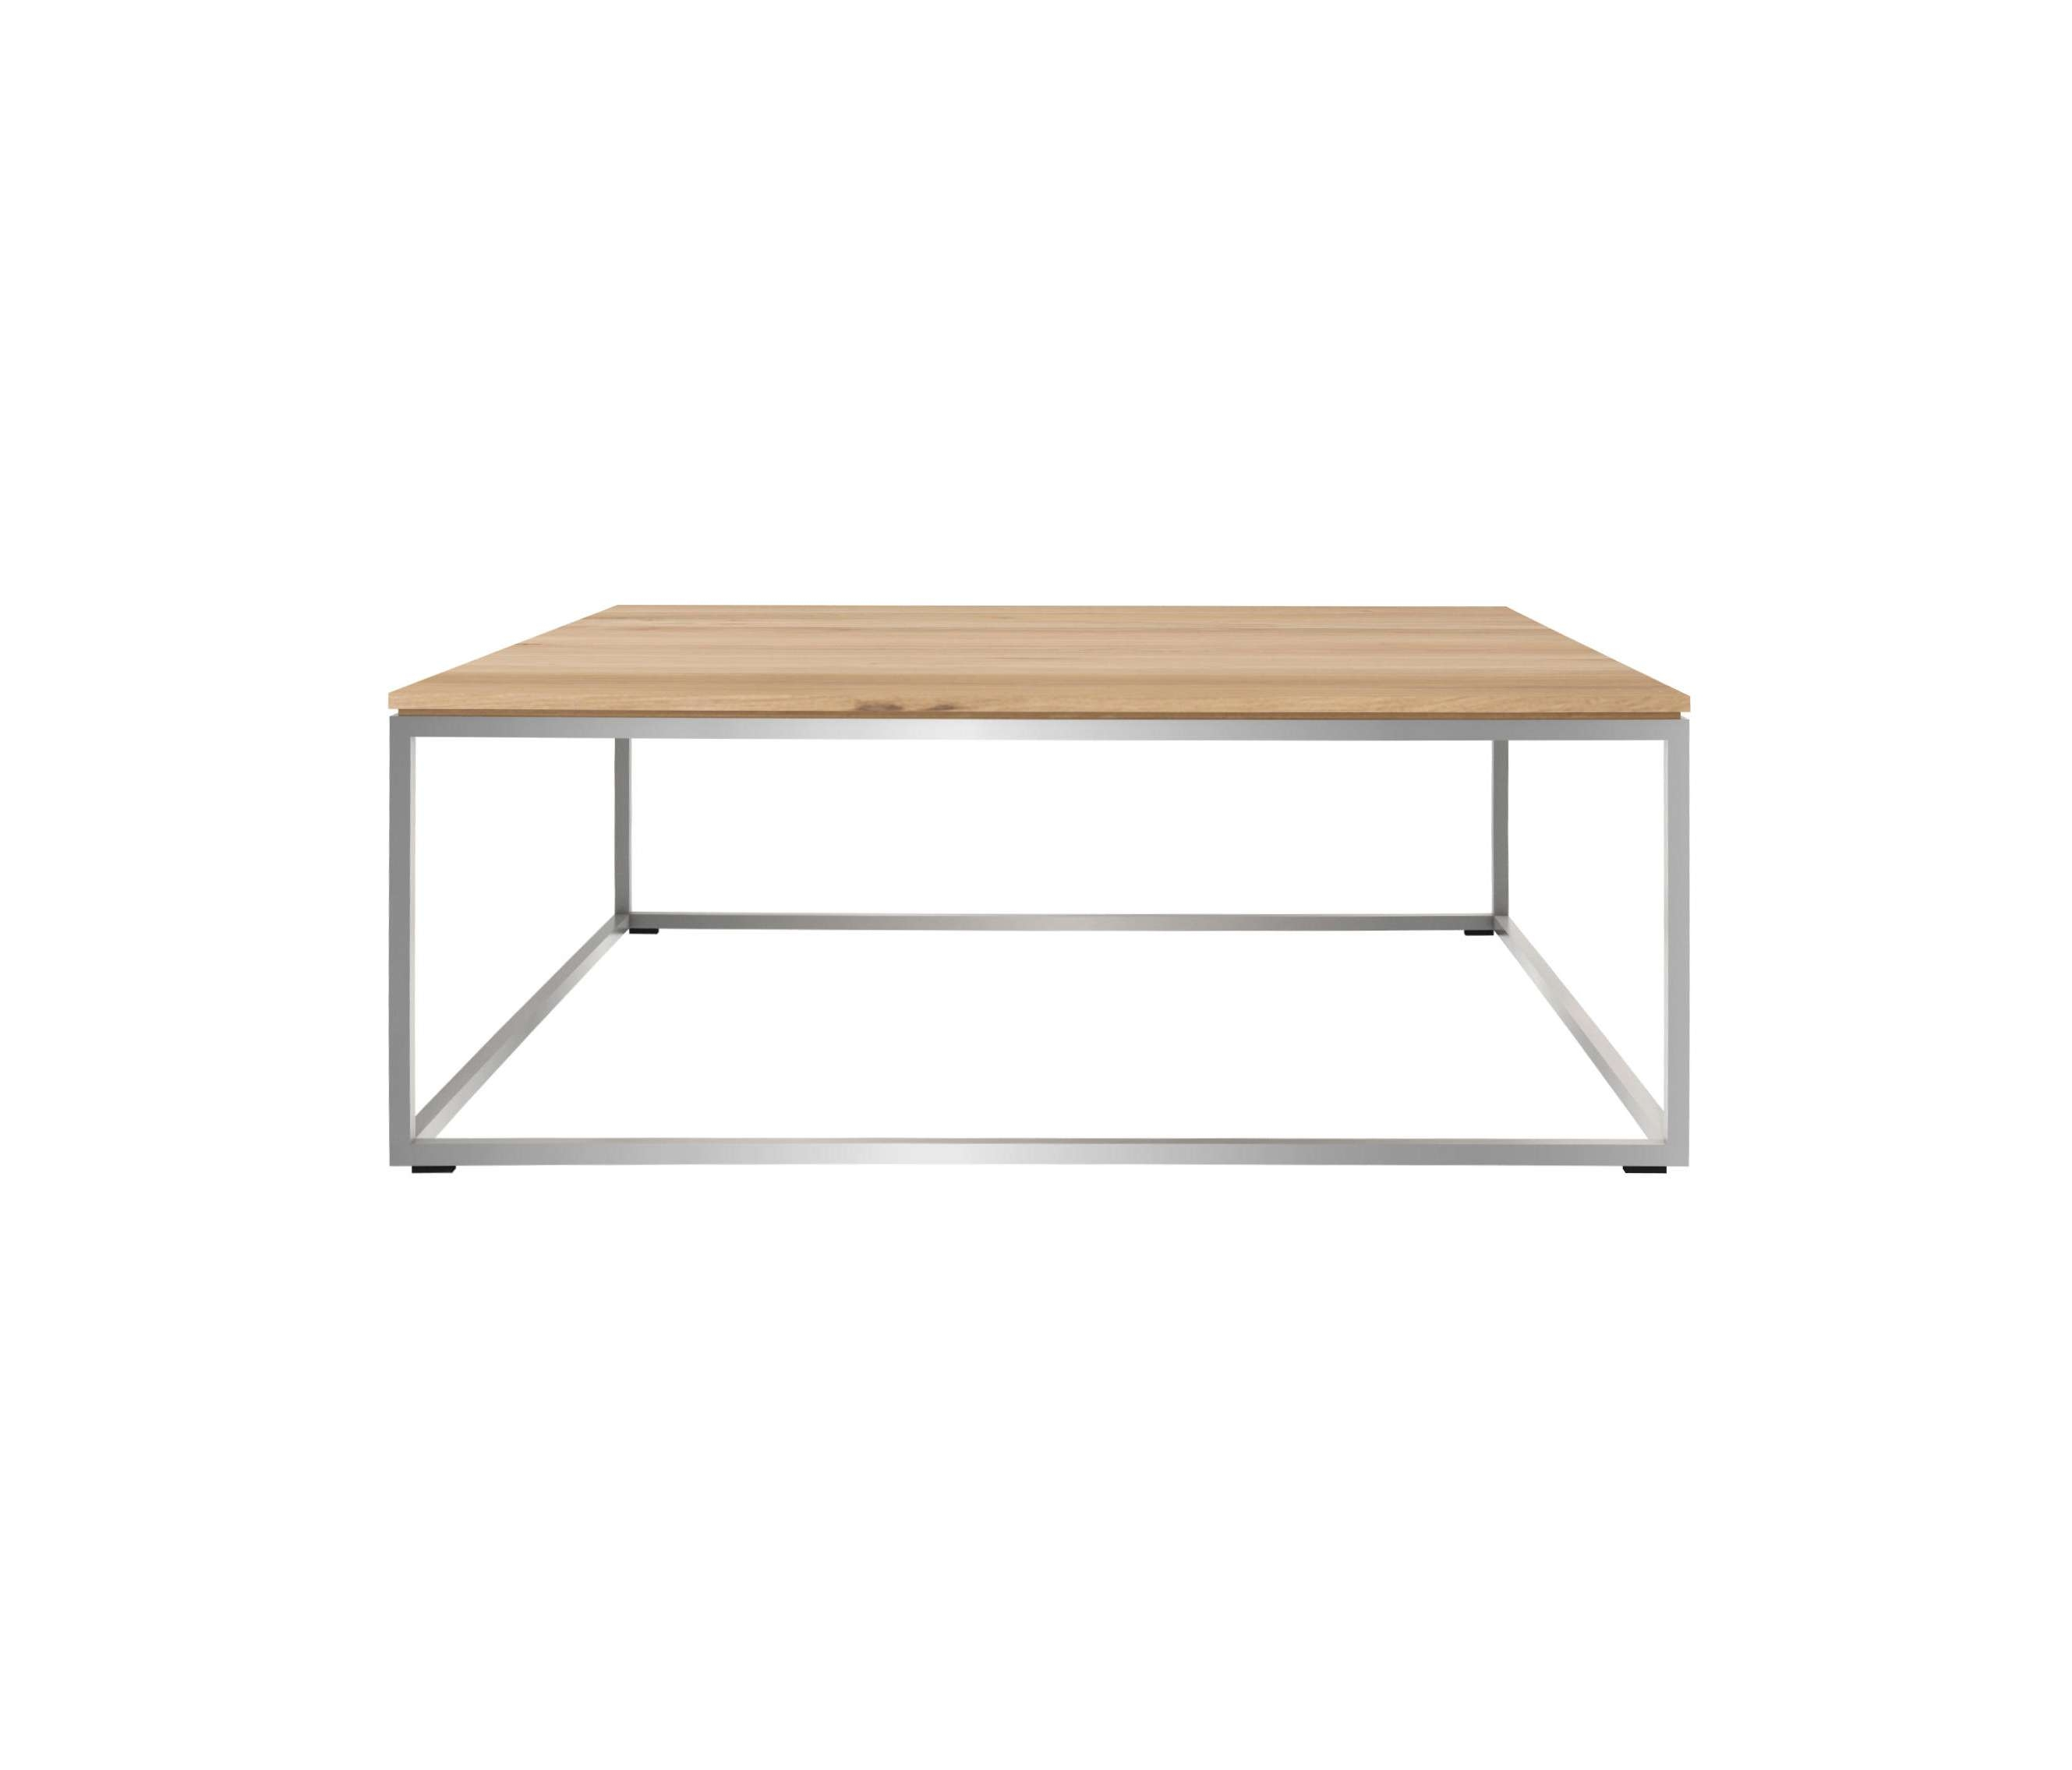 Architonic Regarding Trendy Thin Coffee Tables (Gallery 4 of 20)